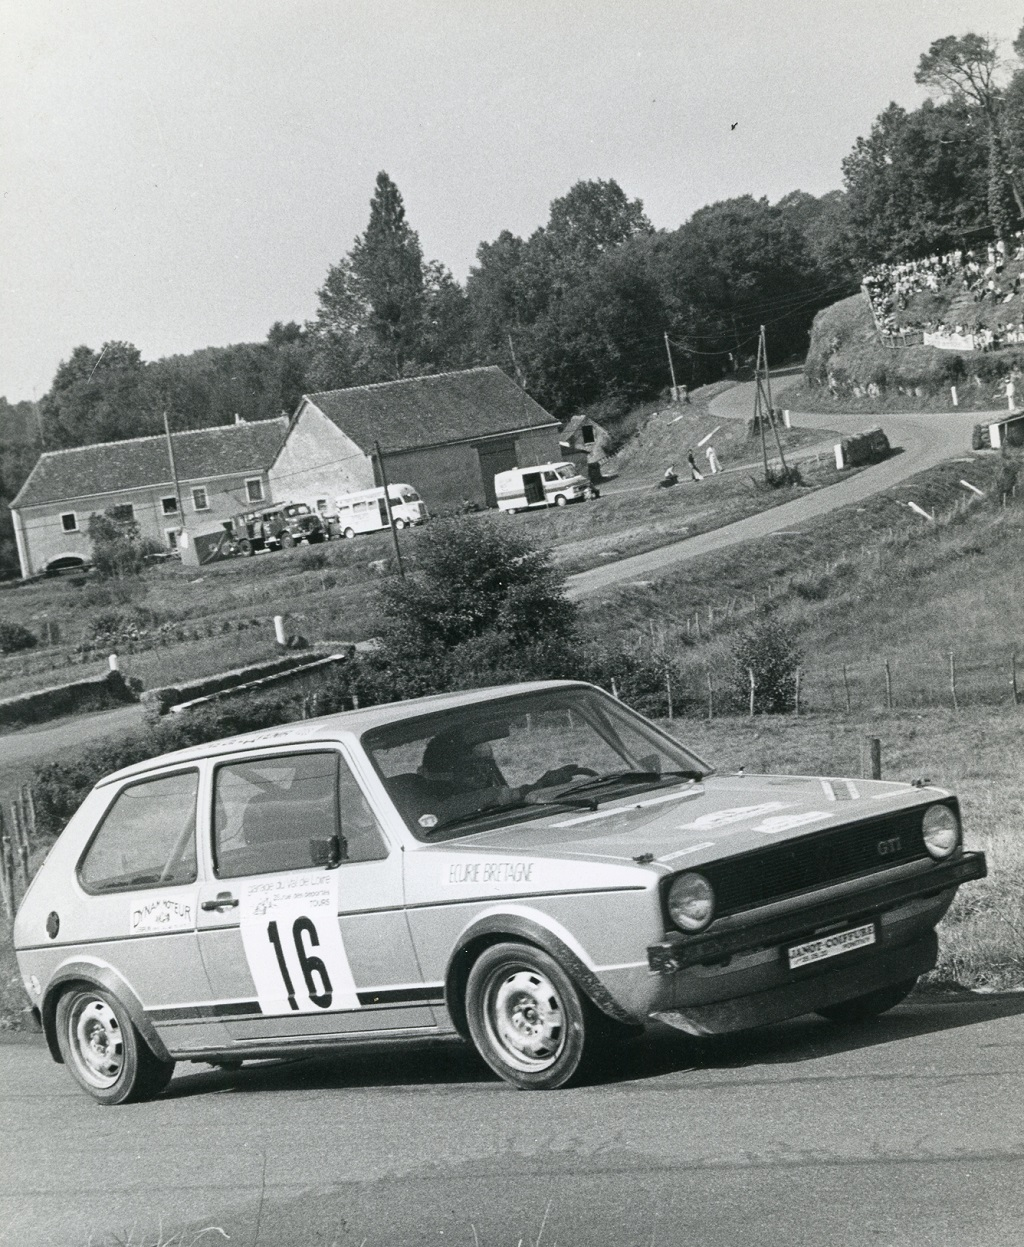 Thierry-Le-Bras -4- VW-Golf-GTI - 1977- CC-Neuvy-le-Roi- Photo- Photo-Actualité